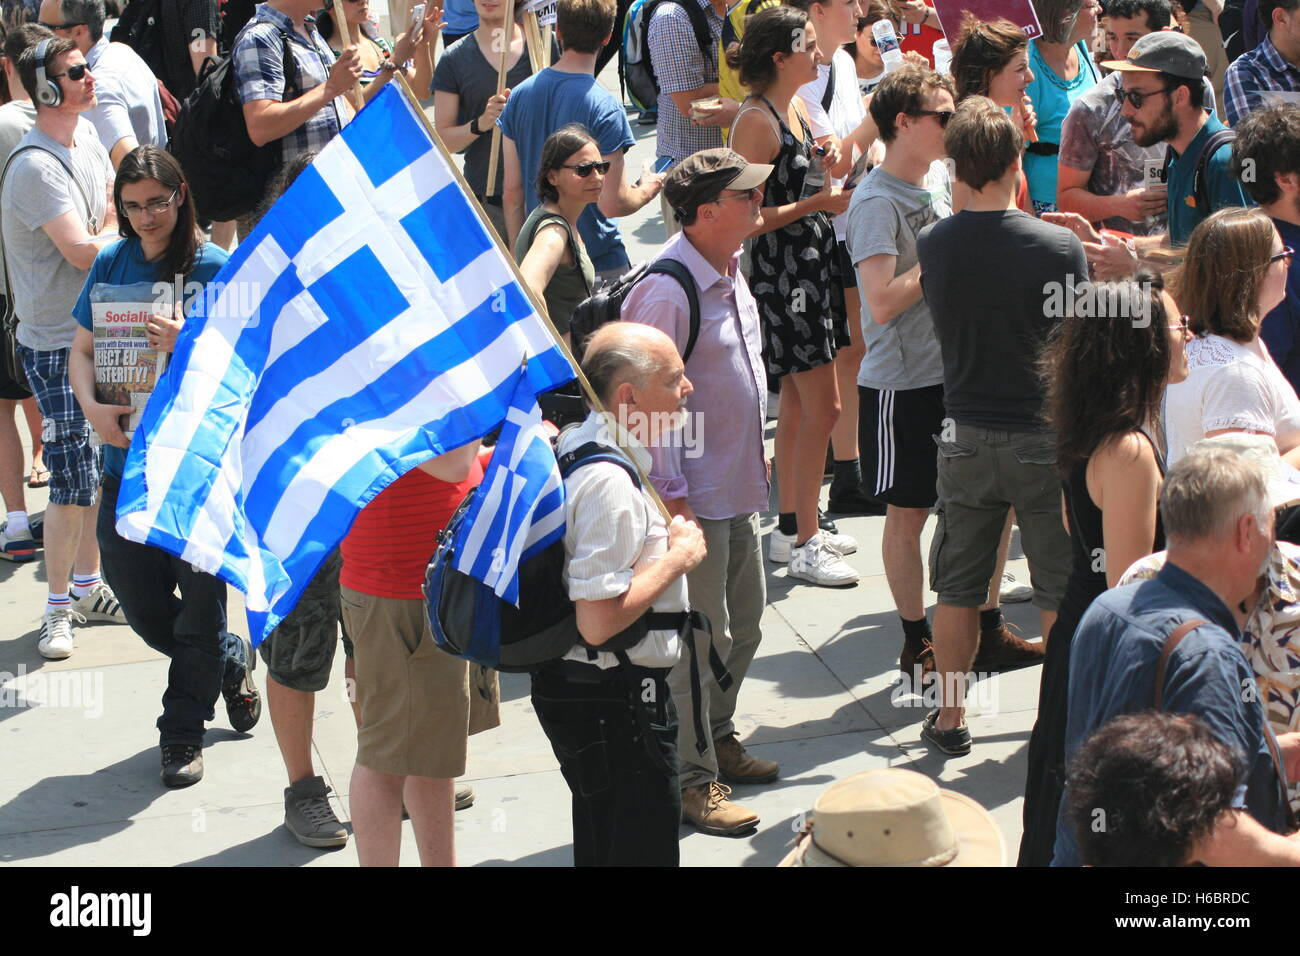 A protester holding the Greek flag, joins hundreds of other protesters in solidarity against the bailout conditions - Stock Image